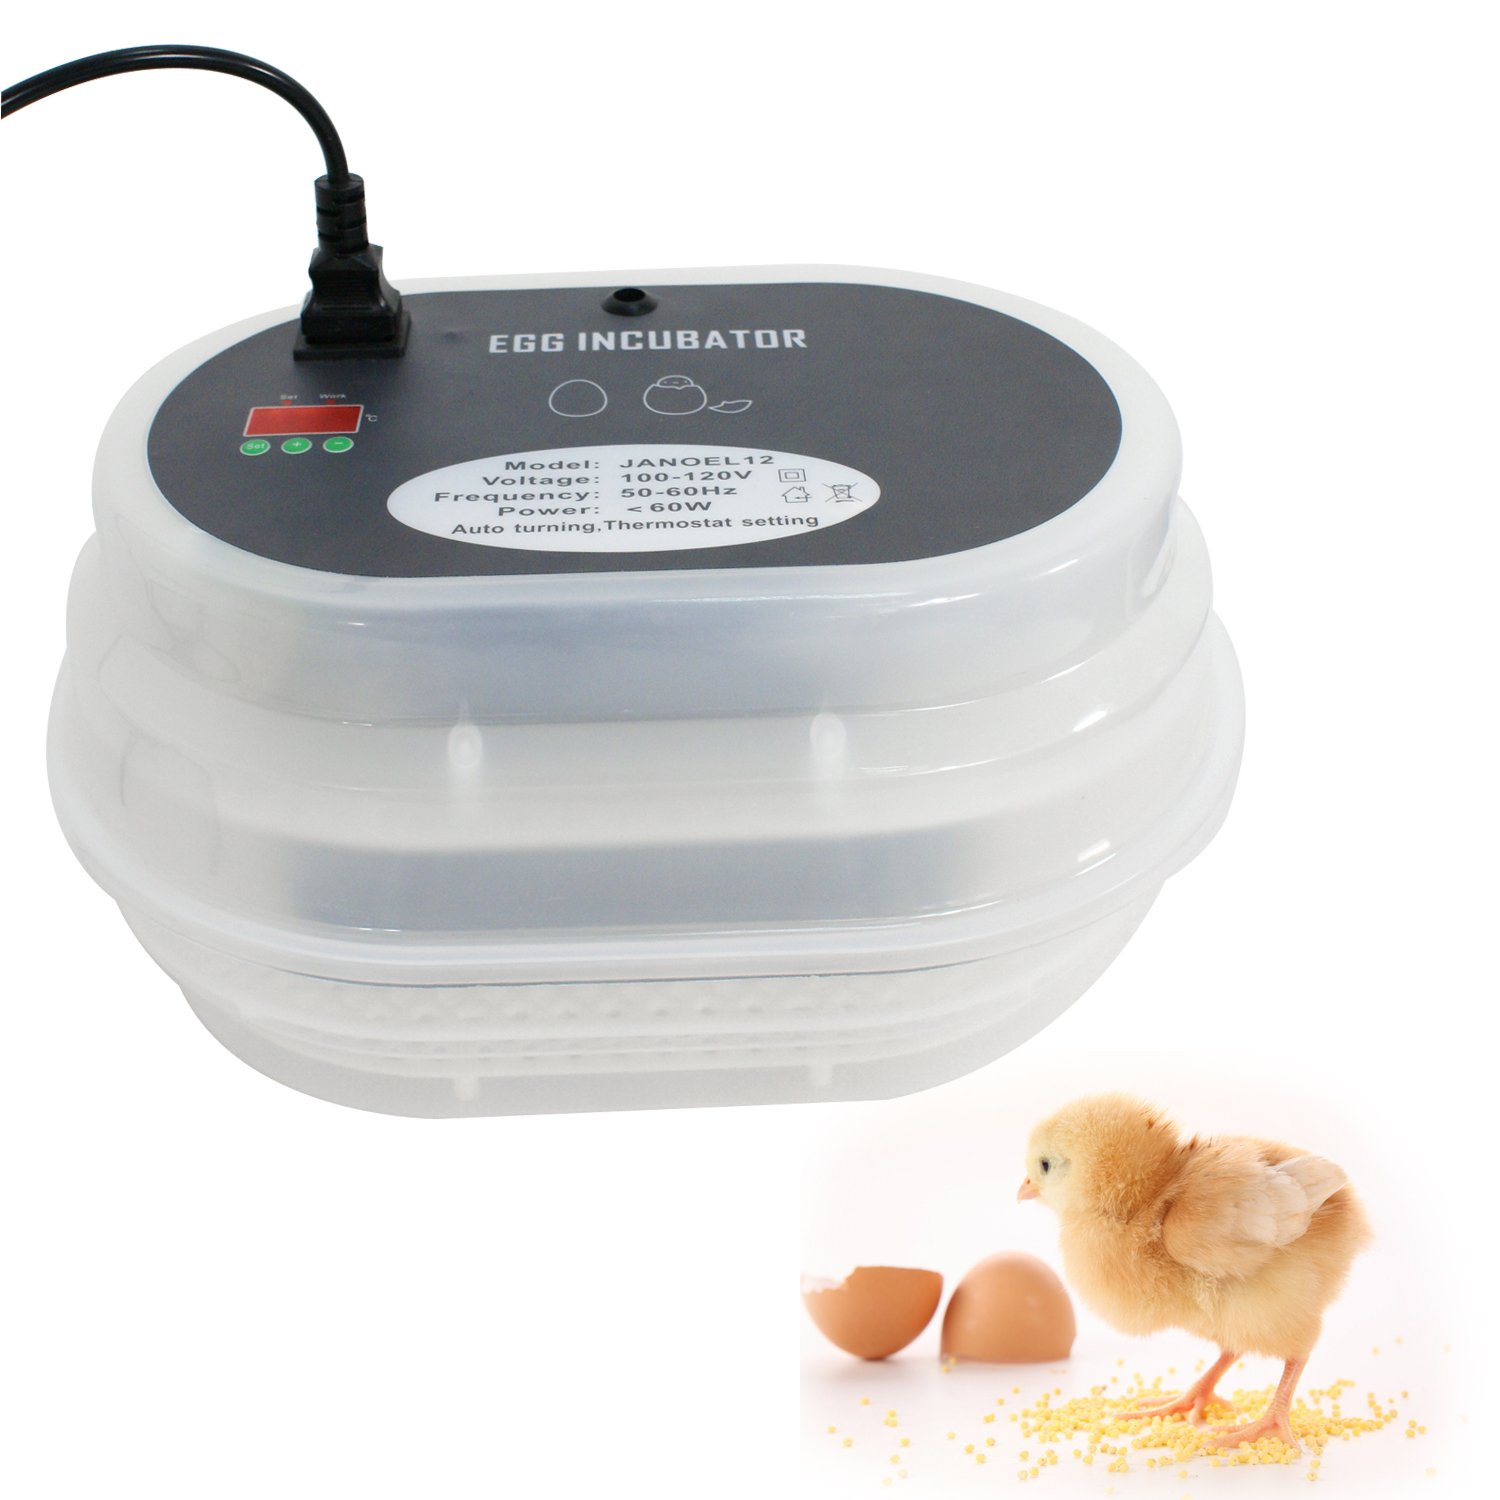 Nova Microdermabrasion Mini Egg Incubator, 9-12 Digital Automatic Chicken Hatcher, Poultry Hatcher W Temperature Control for Chickens Ducks Goose Quails Birds